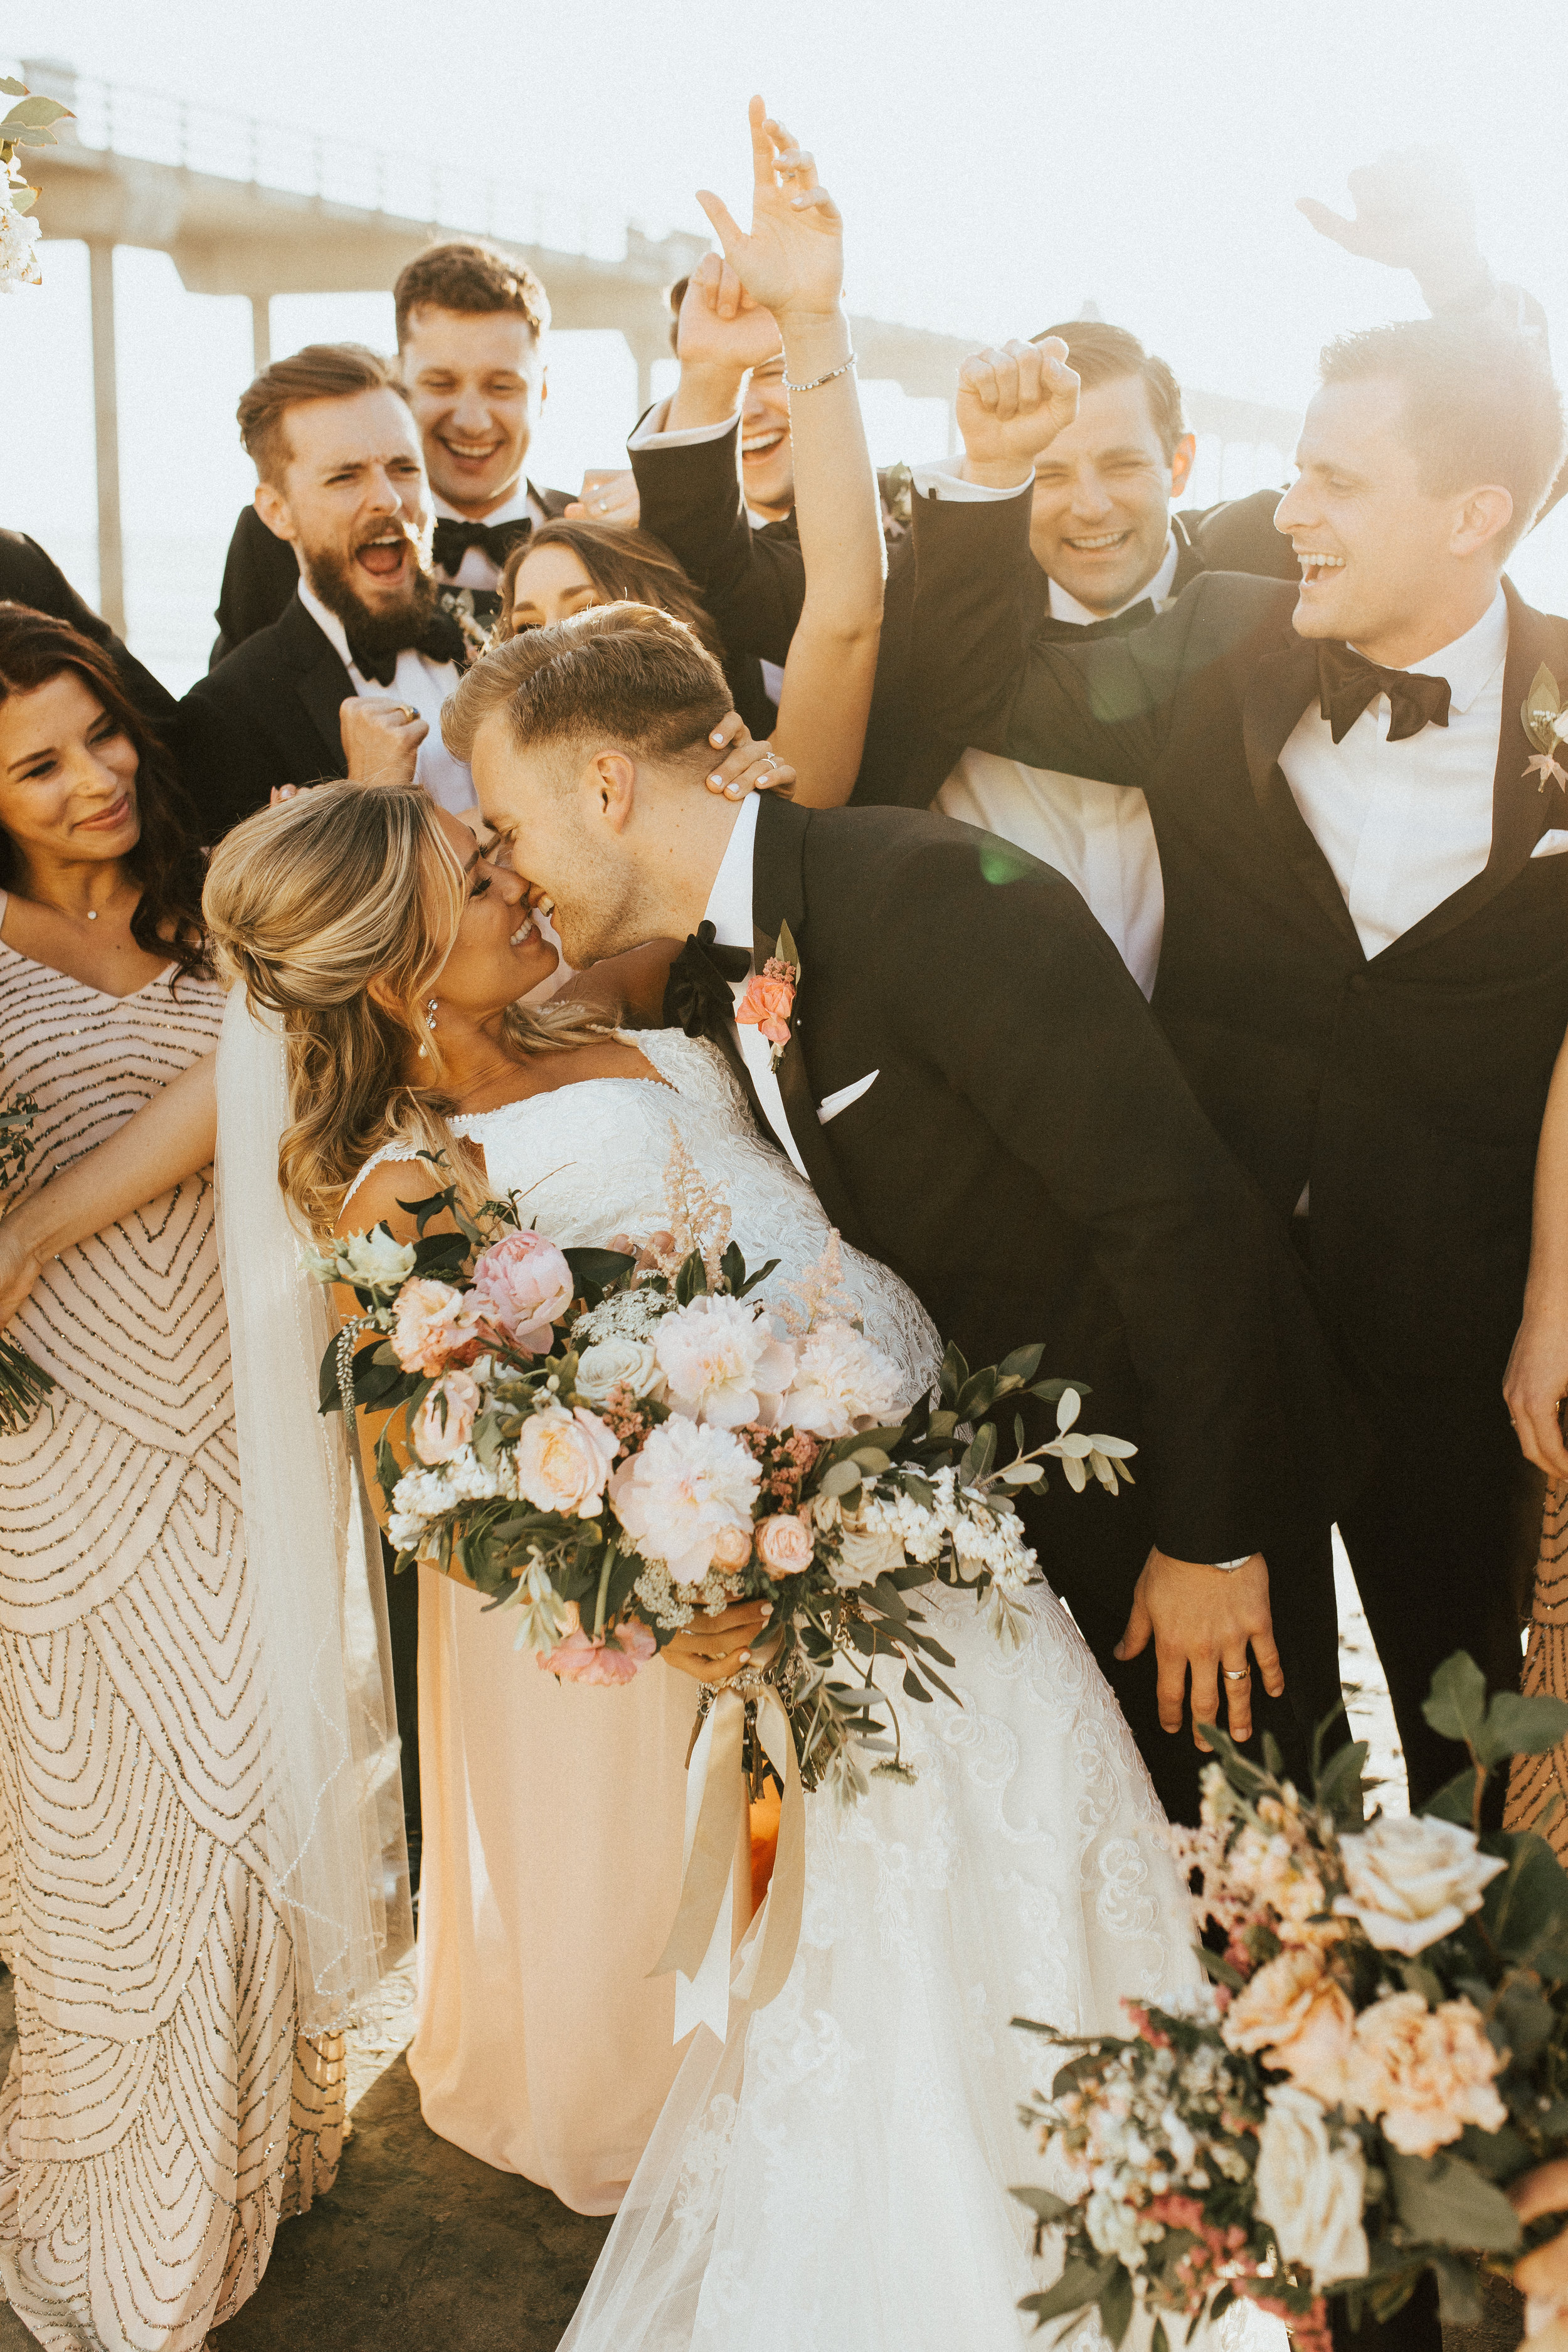 A LOVE STORY. - A WEDDING THAT CELEBRATES FAMILY + LOVE.